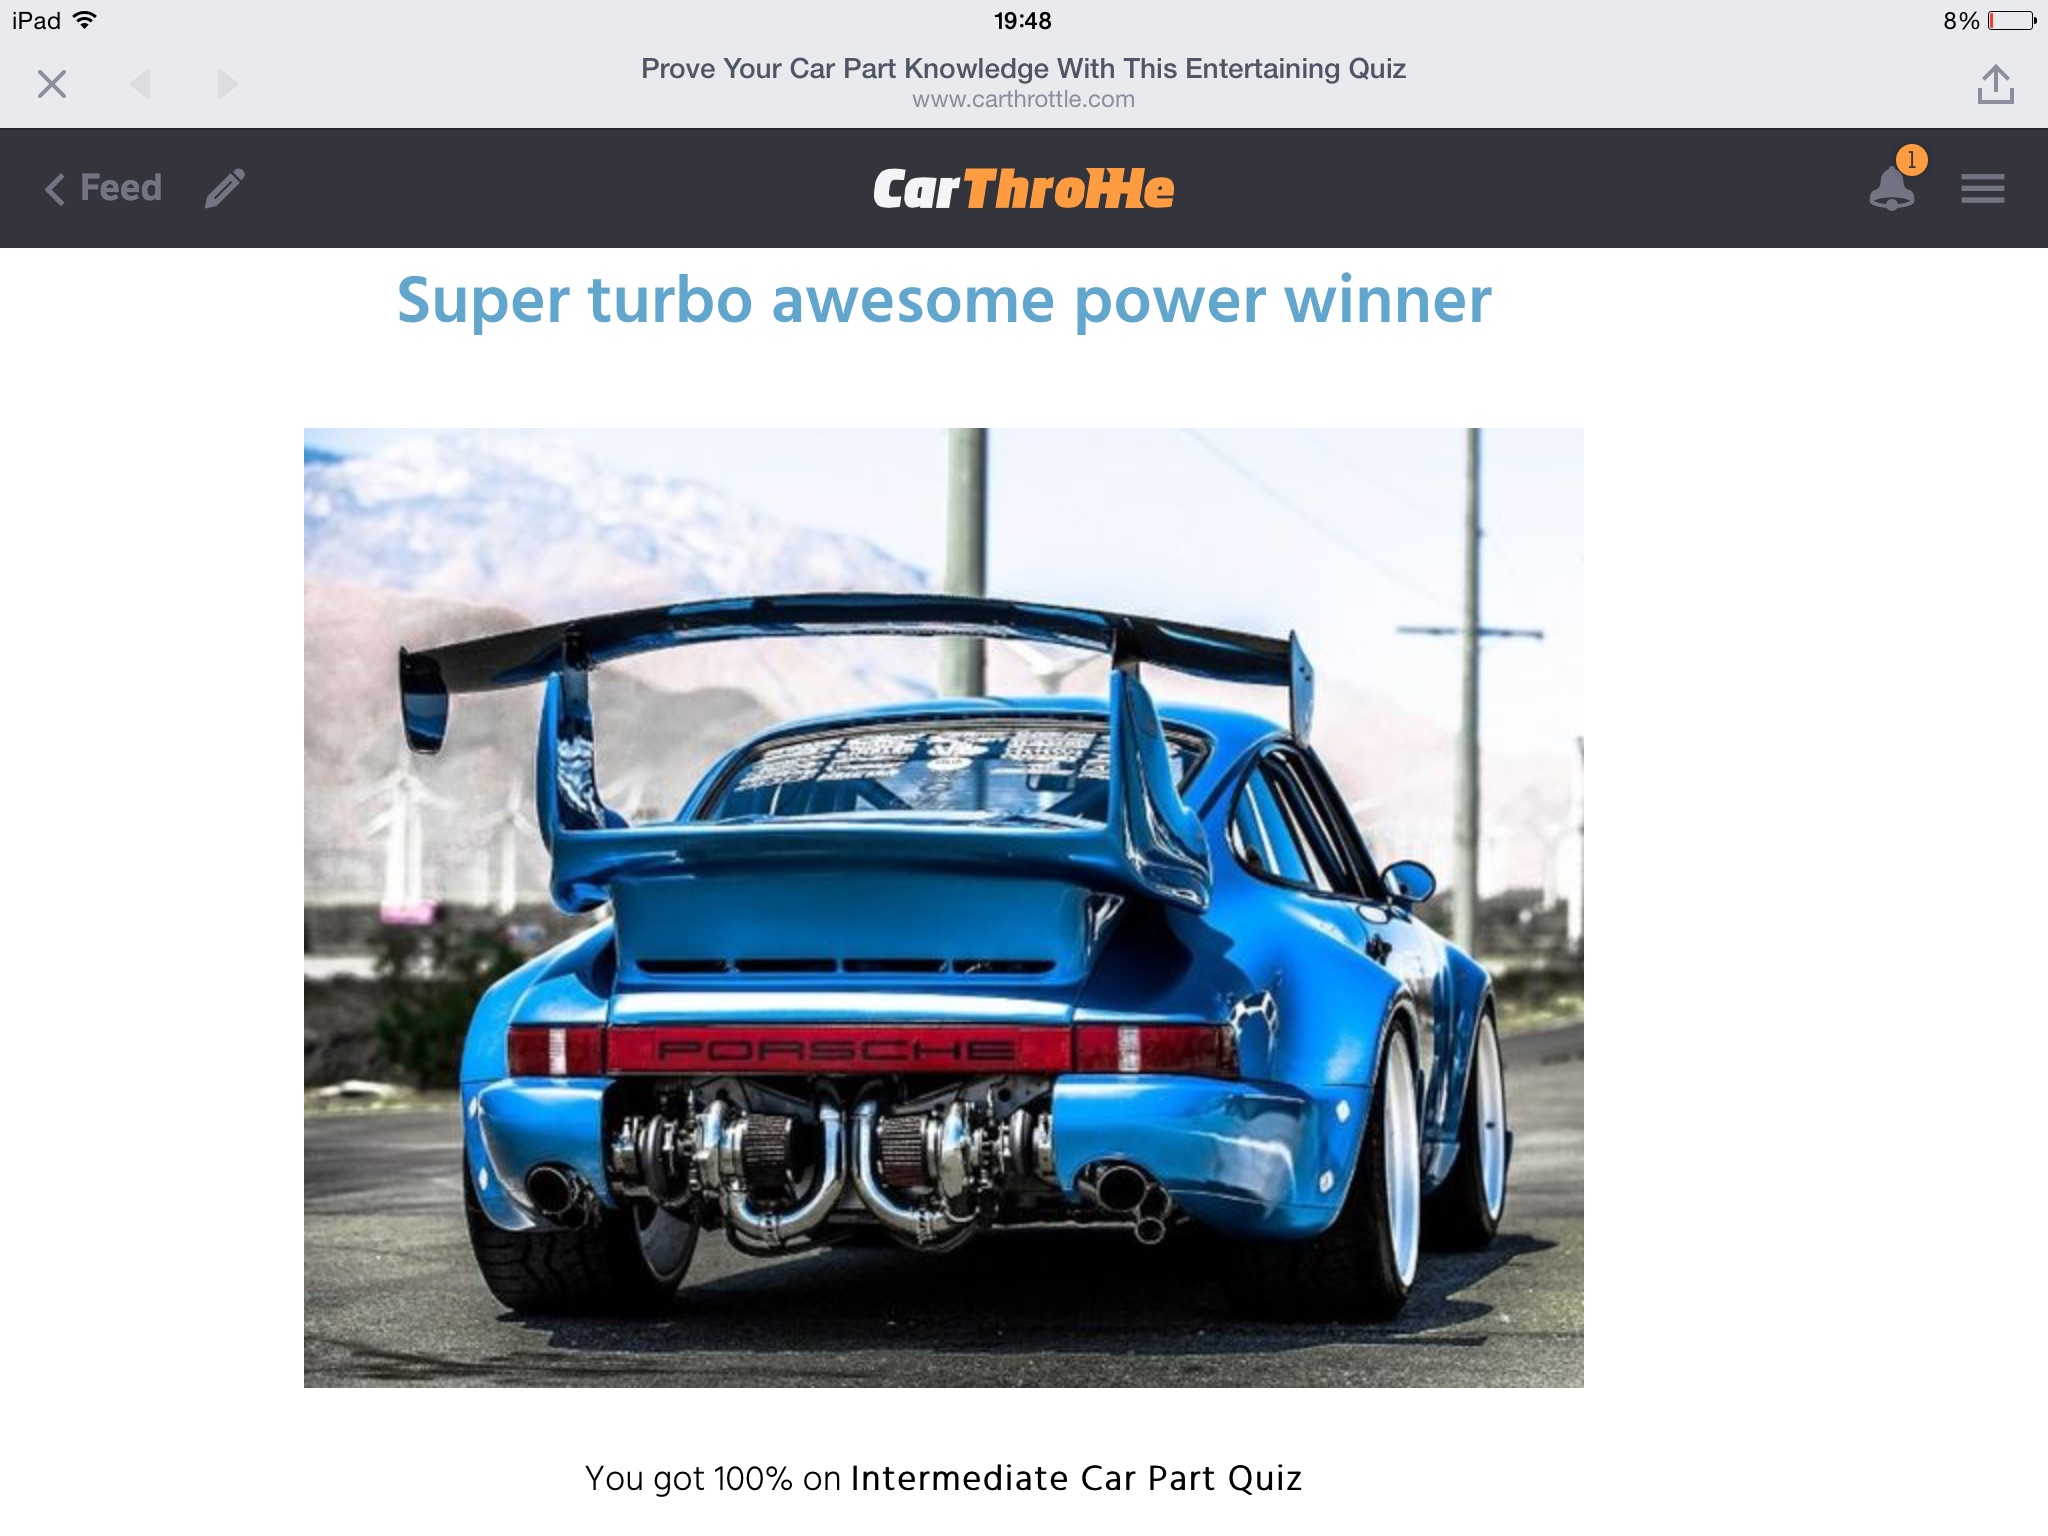 Prove Your Car Part Knowledge With This Entertaining Quiz